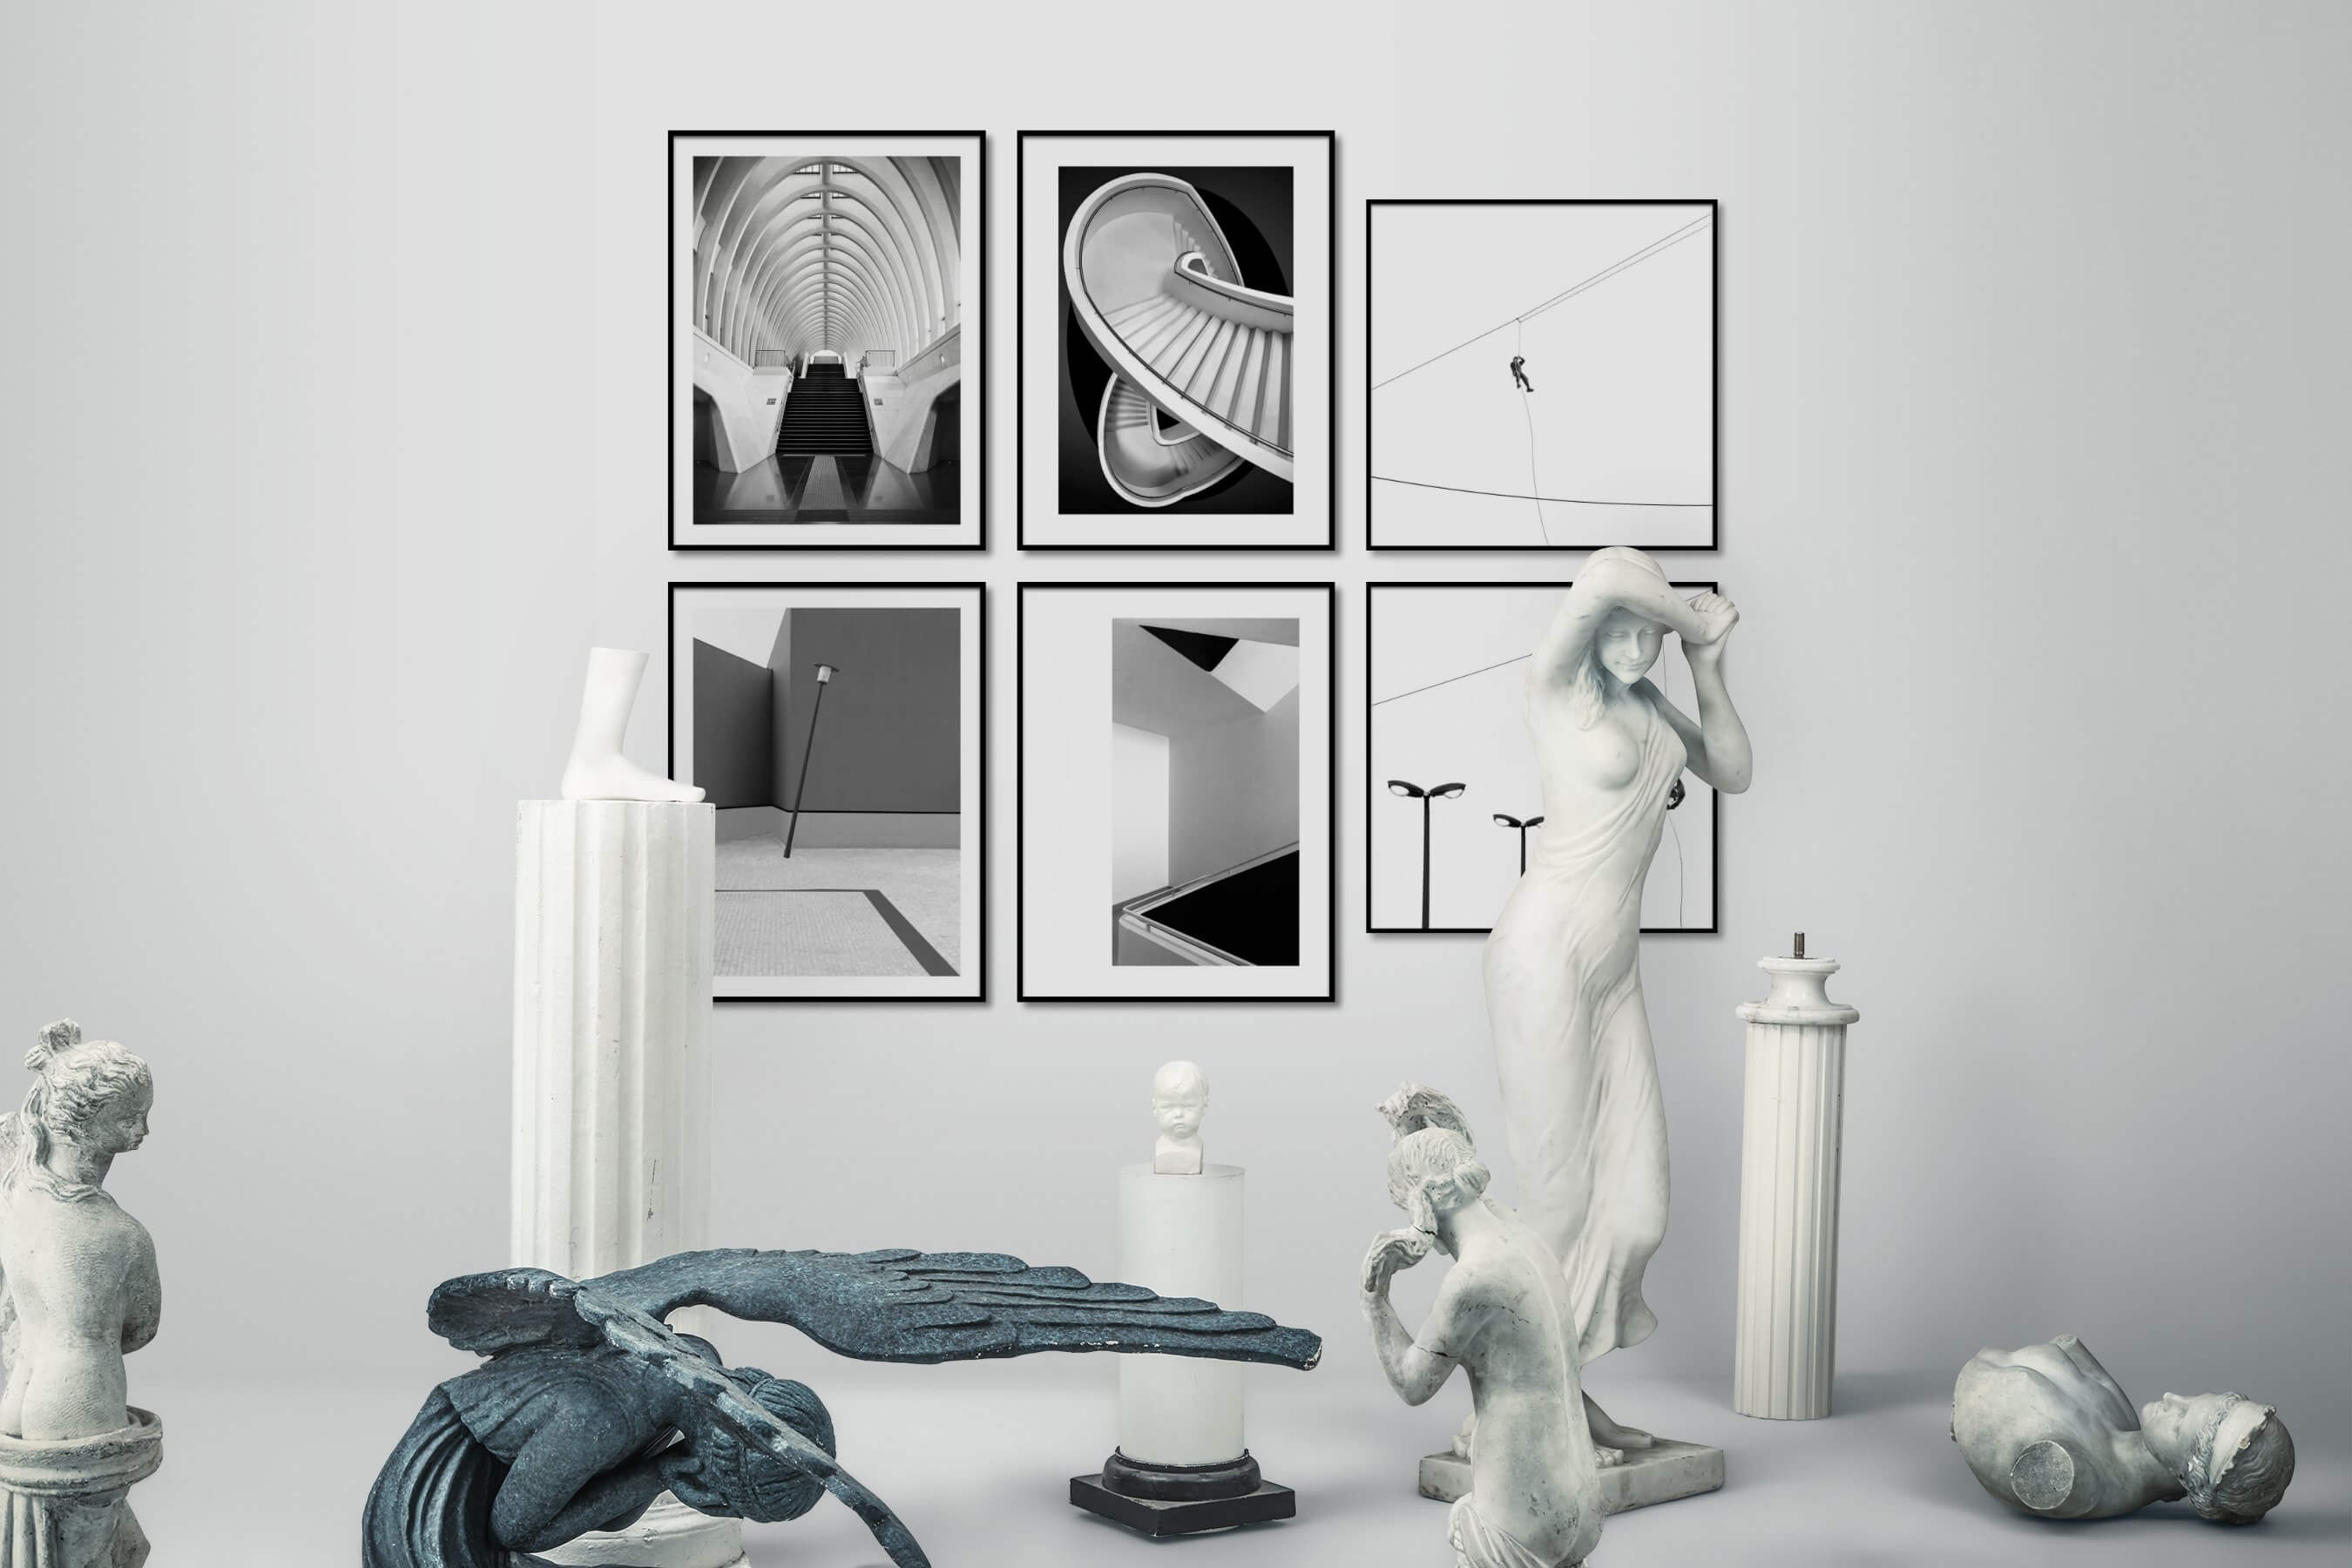 Gallery wall idea with six framed pictures arranged on a wall depicting Black & White, For the Moderate, City Life, For the Minimalist, and Bright Tones